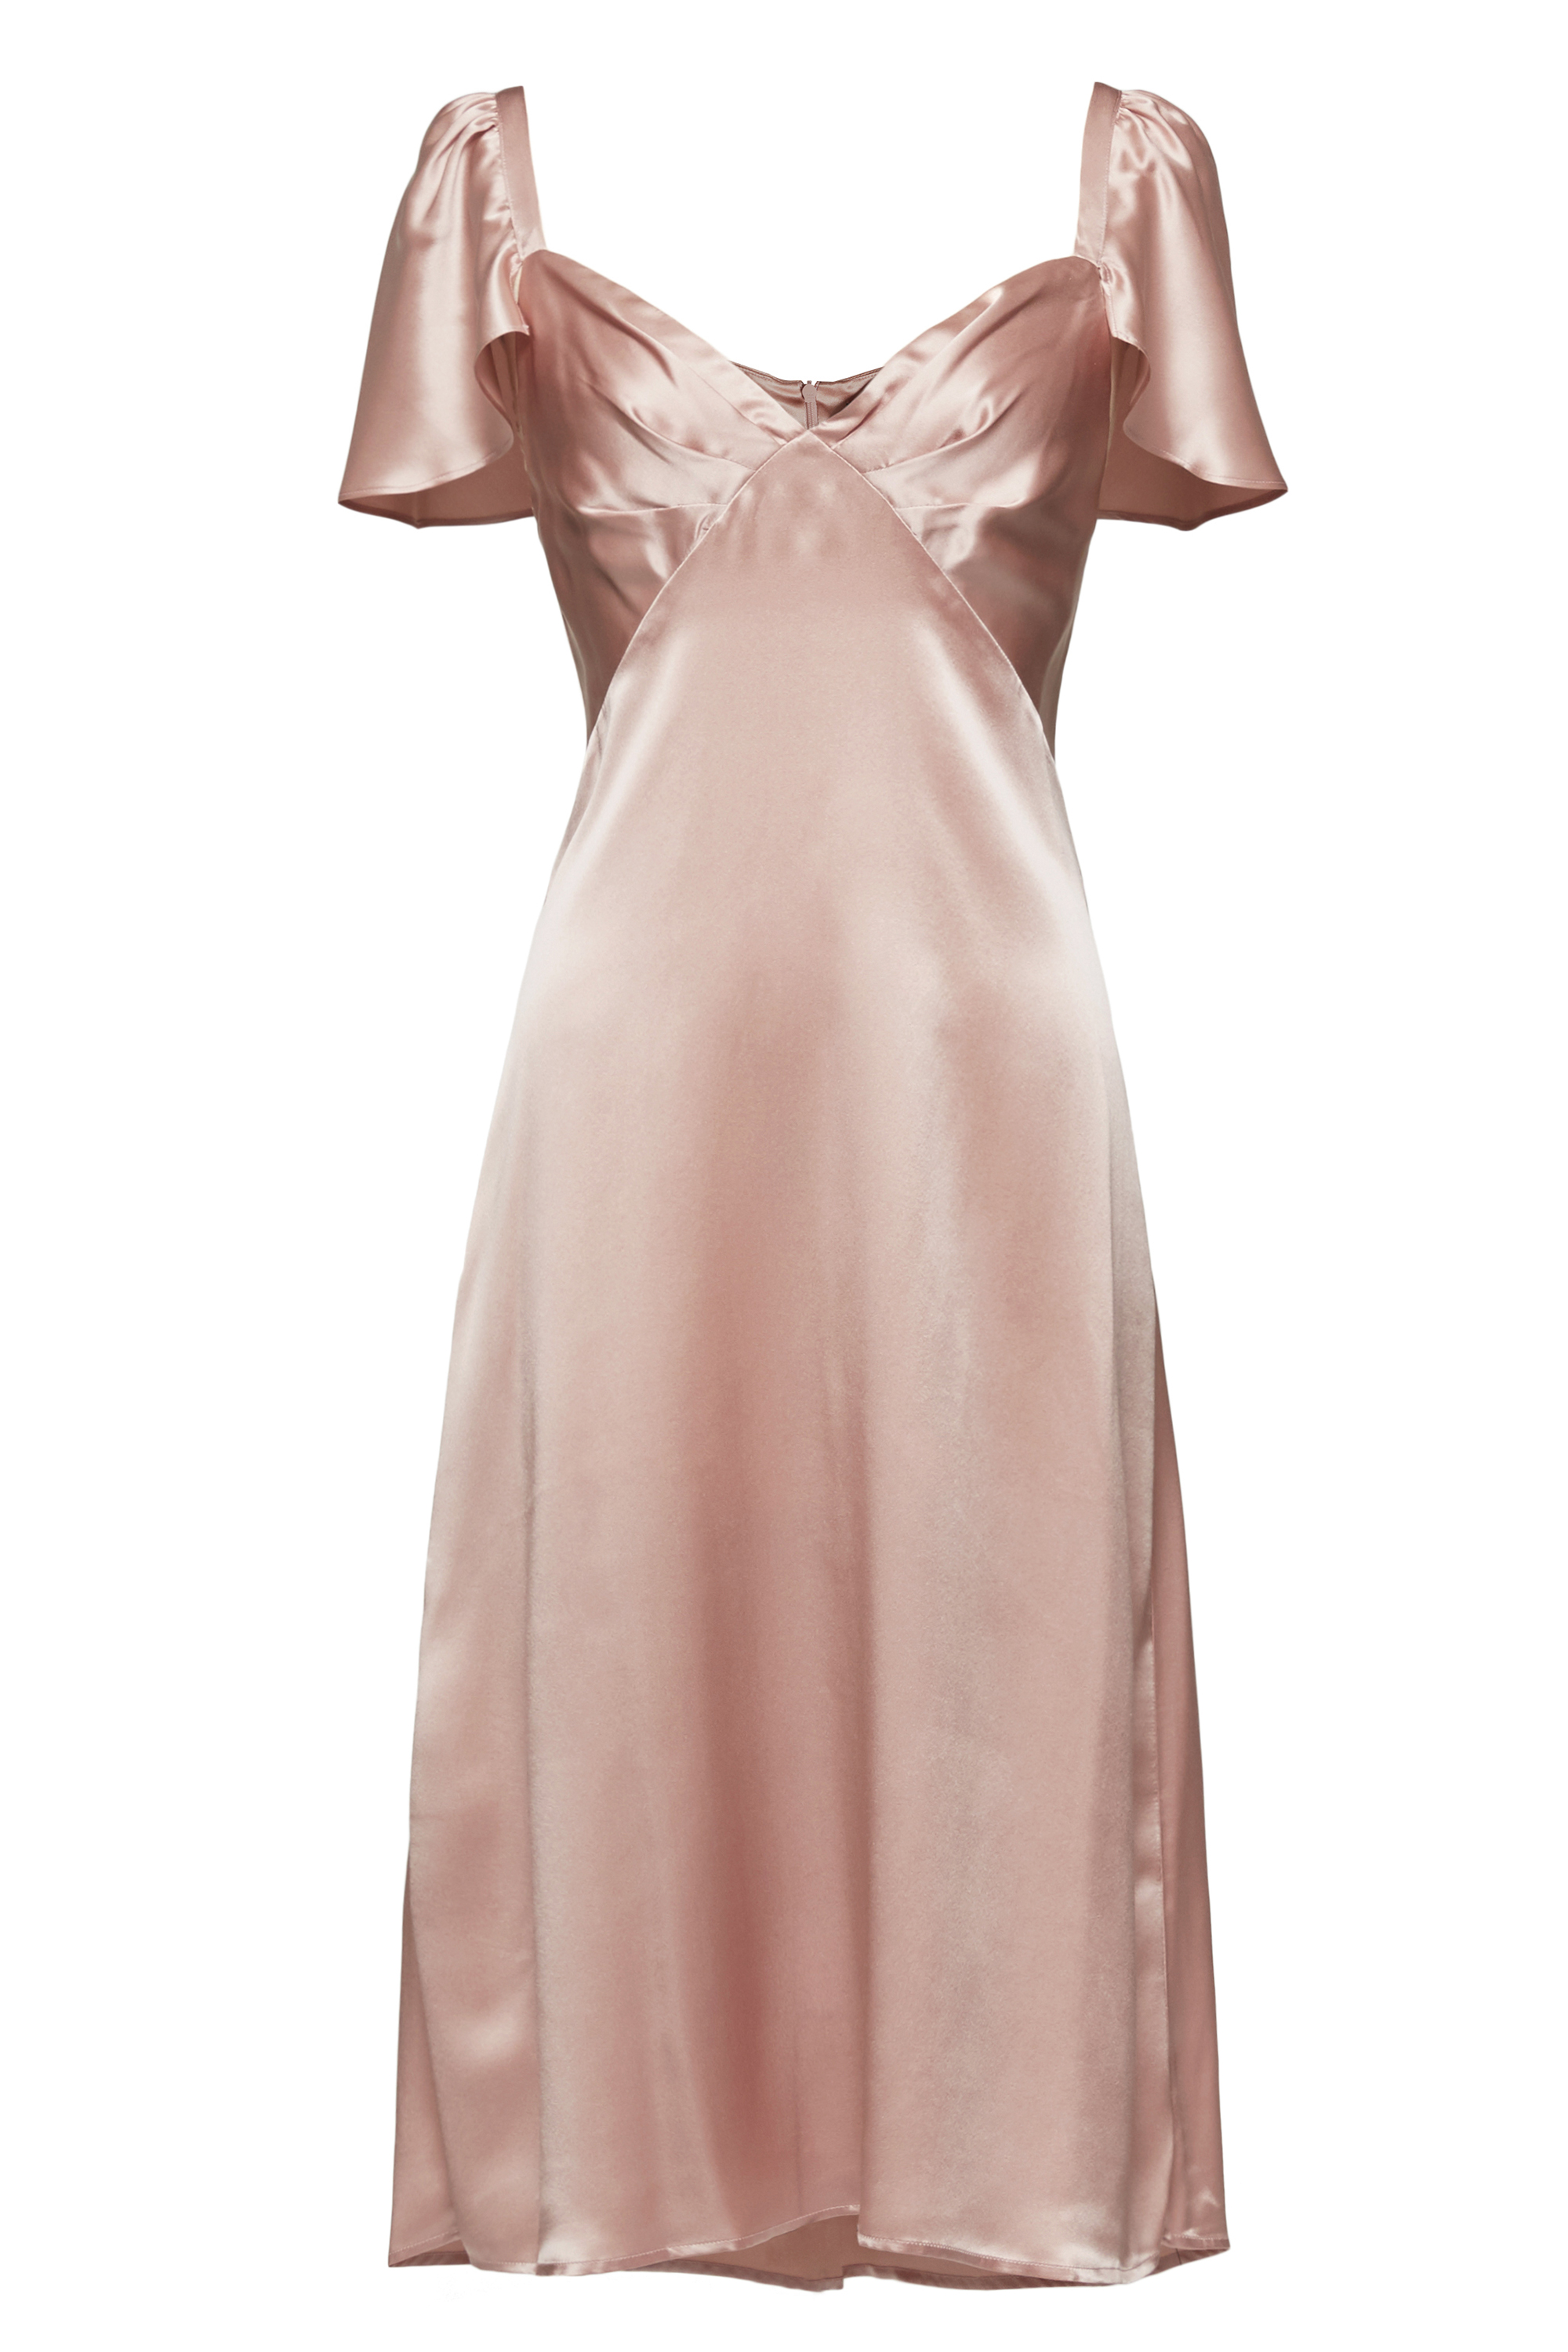 What to wear to a summer 2017 wedding 30 wedding guest for Dress wedding guest summer